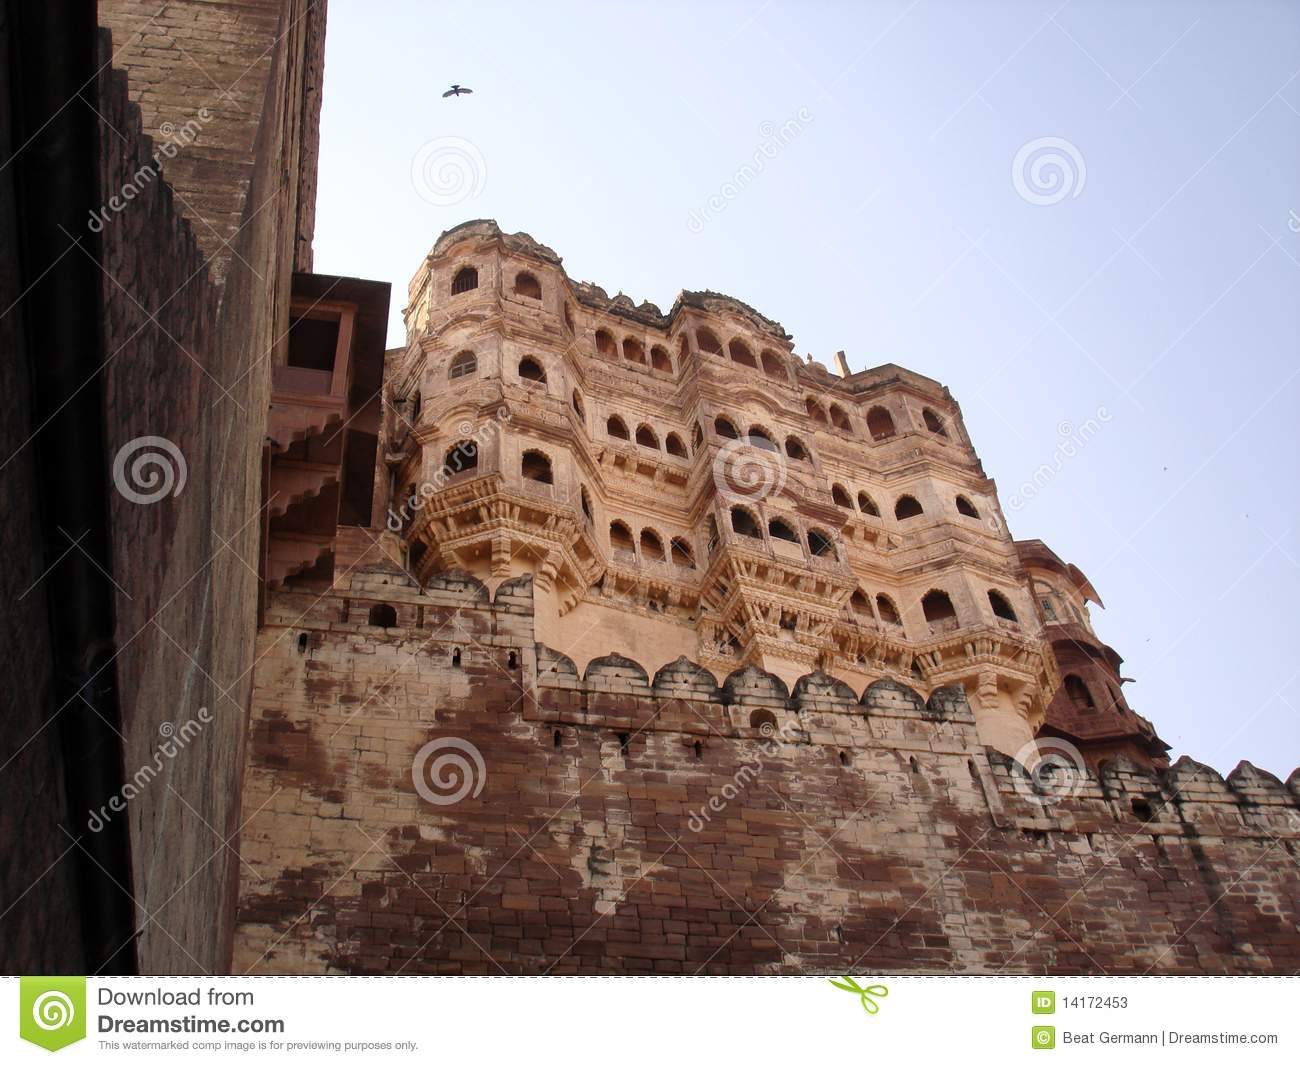 dating jodhpur Converting their palaces into global enterprises, these royals have embraced history and heritage in a modern way.